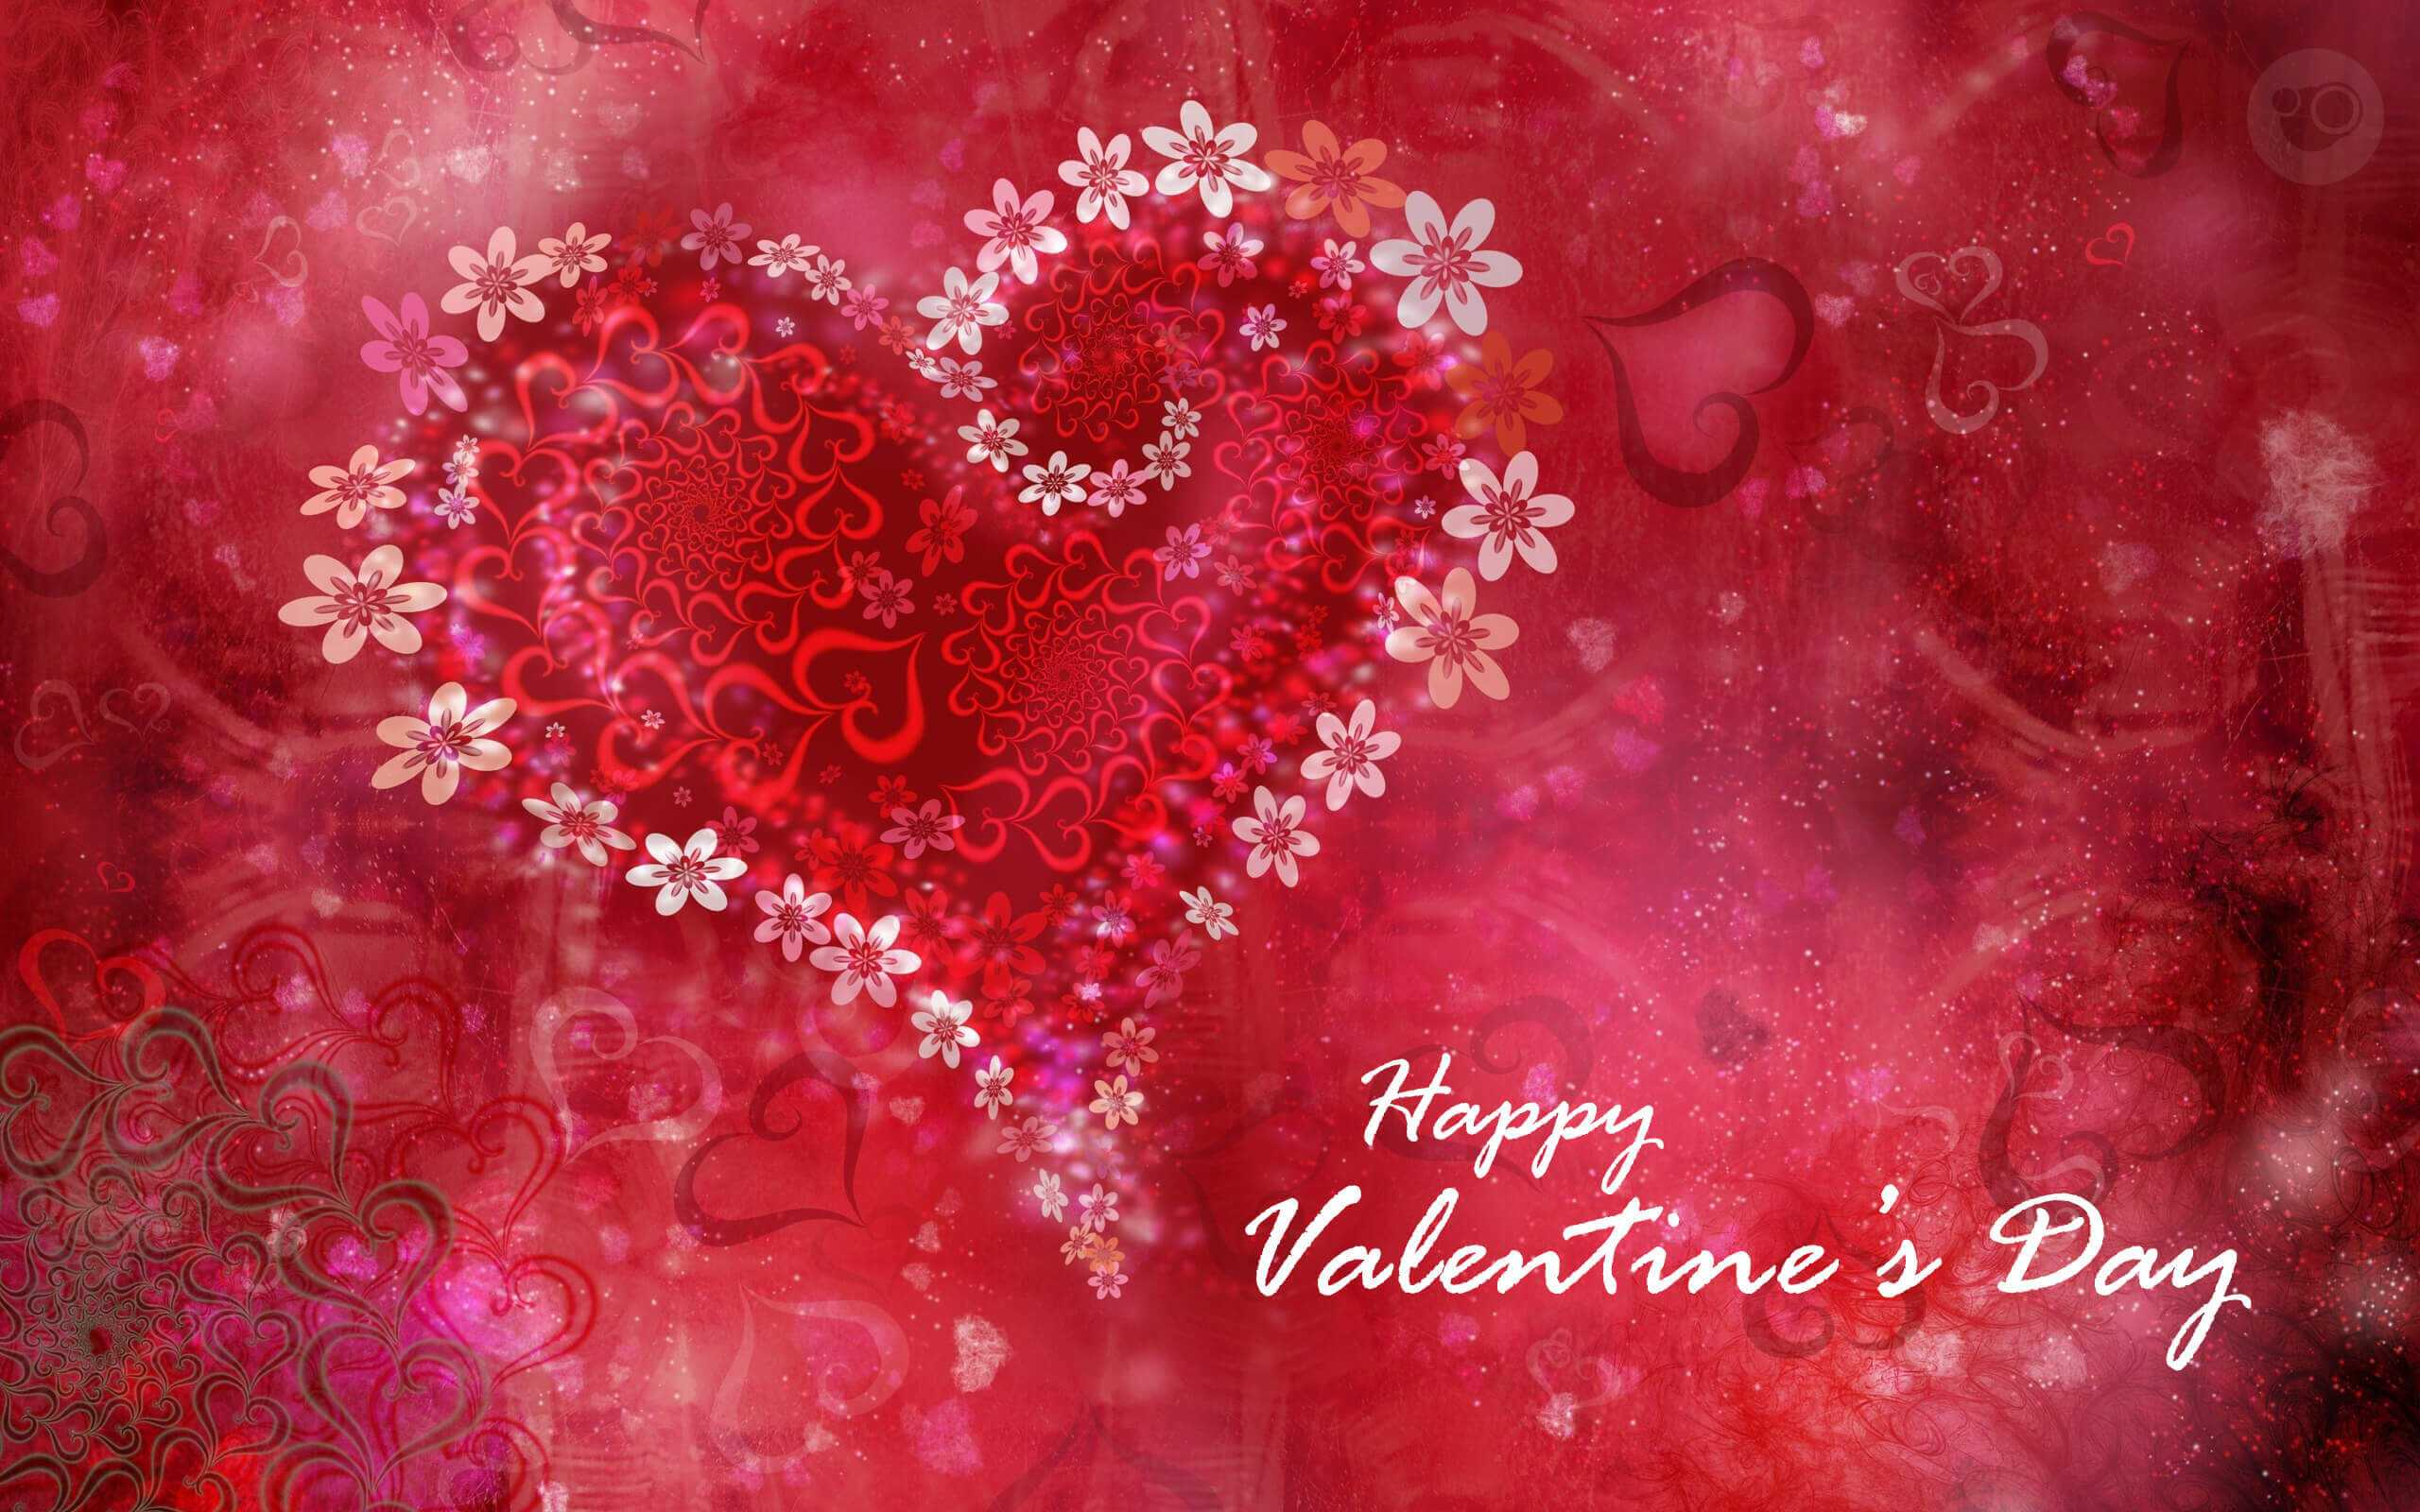 Valentines Day Wallpaper 4